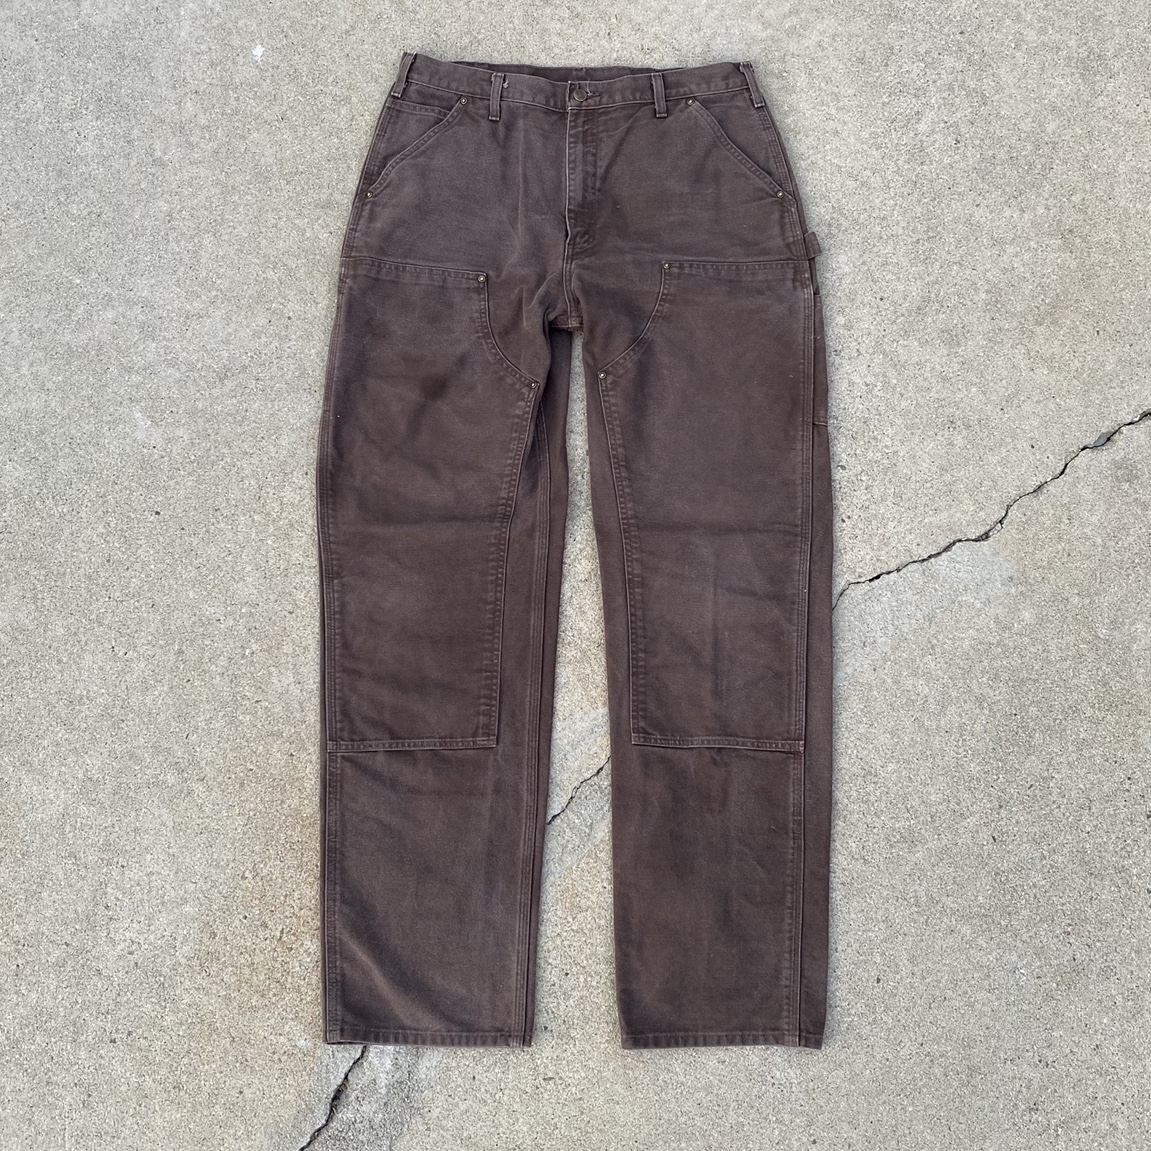 Product Image 1 - Chocolate Brown Carhartt Double Knee